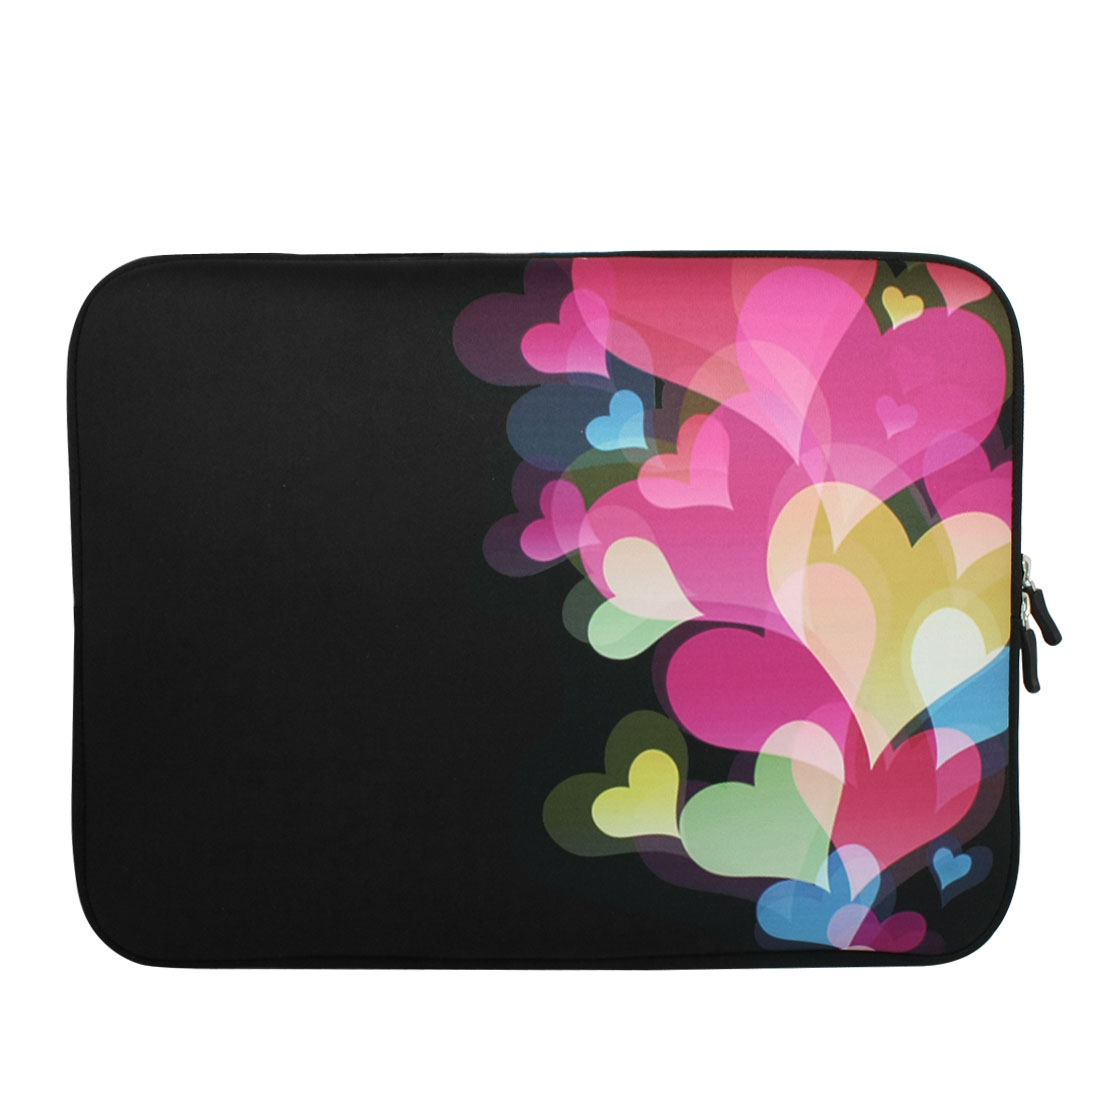 "17"" 17.3"" 17.4"" Colorful Heart Pattern Notebook Laptop Sleeve Bag Case for HP"